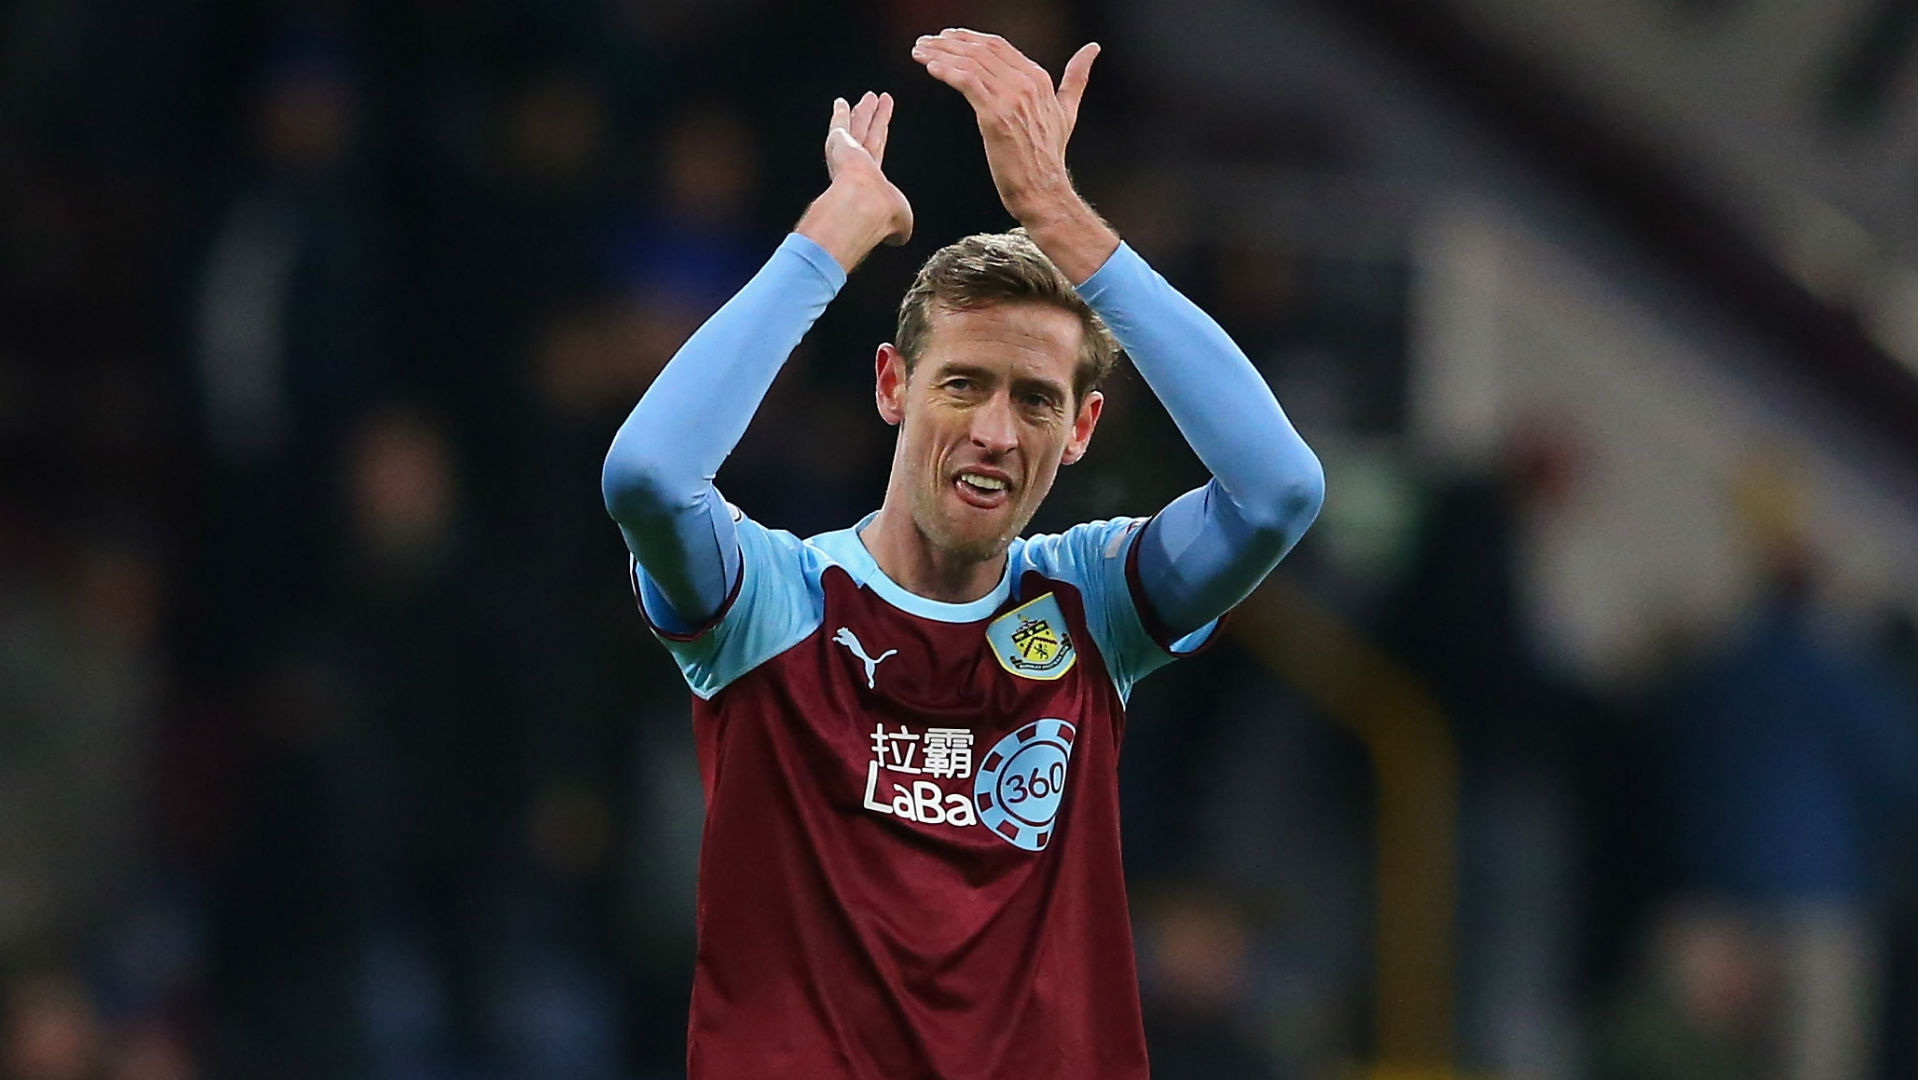 Former England, Liverpool and Spurs striker Peter Crouch retires